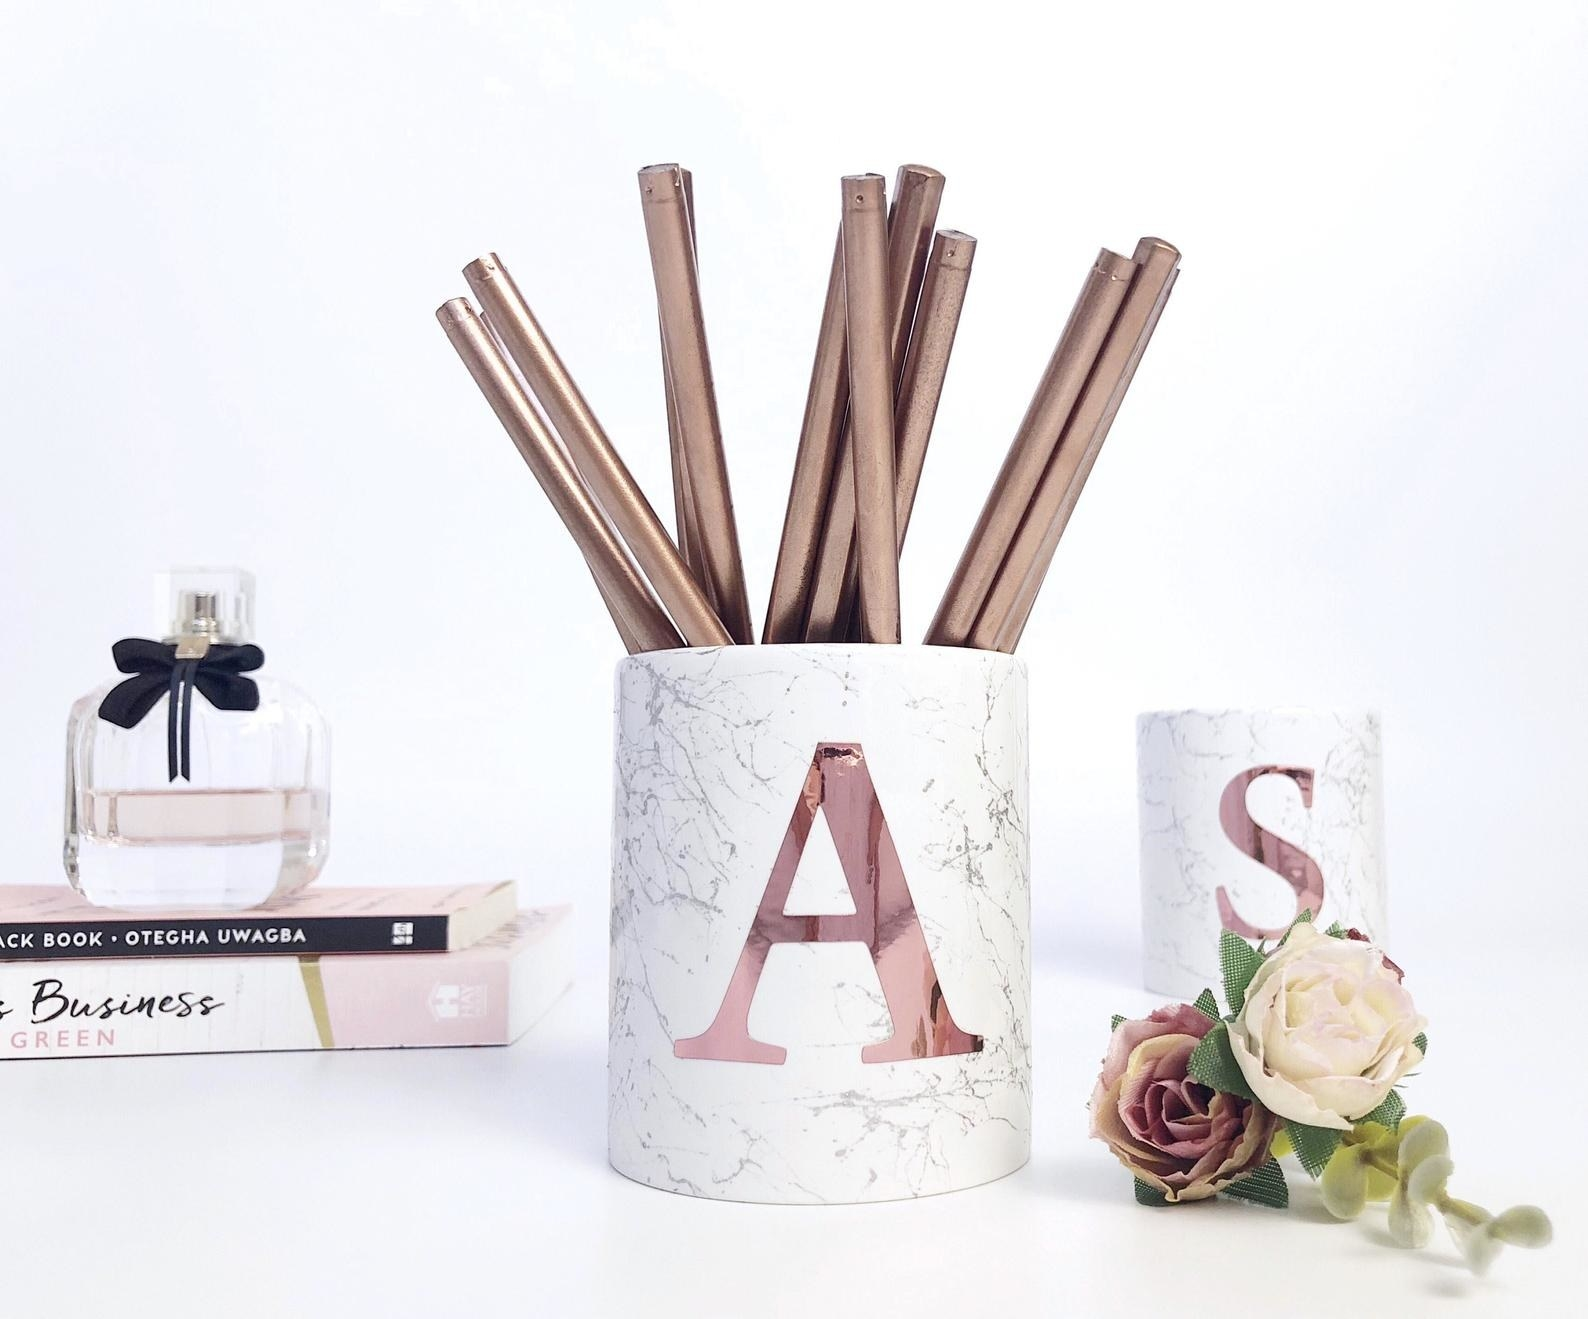 Monogram pencil cups filled with pens placed on table